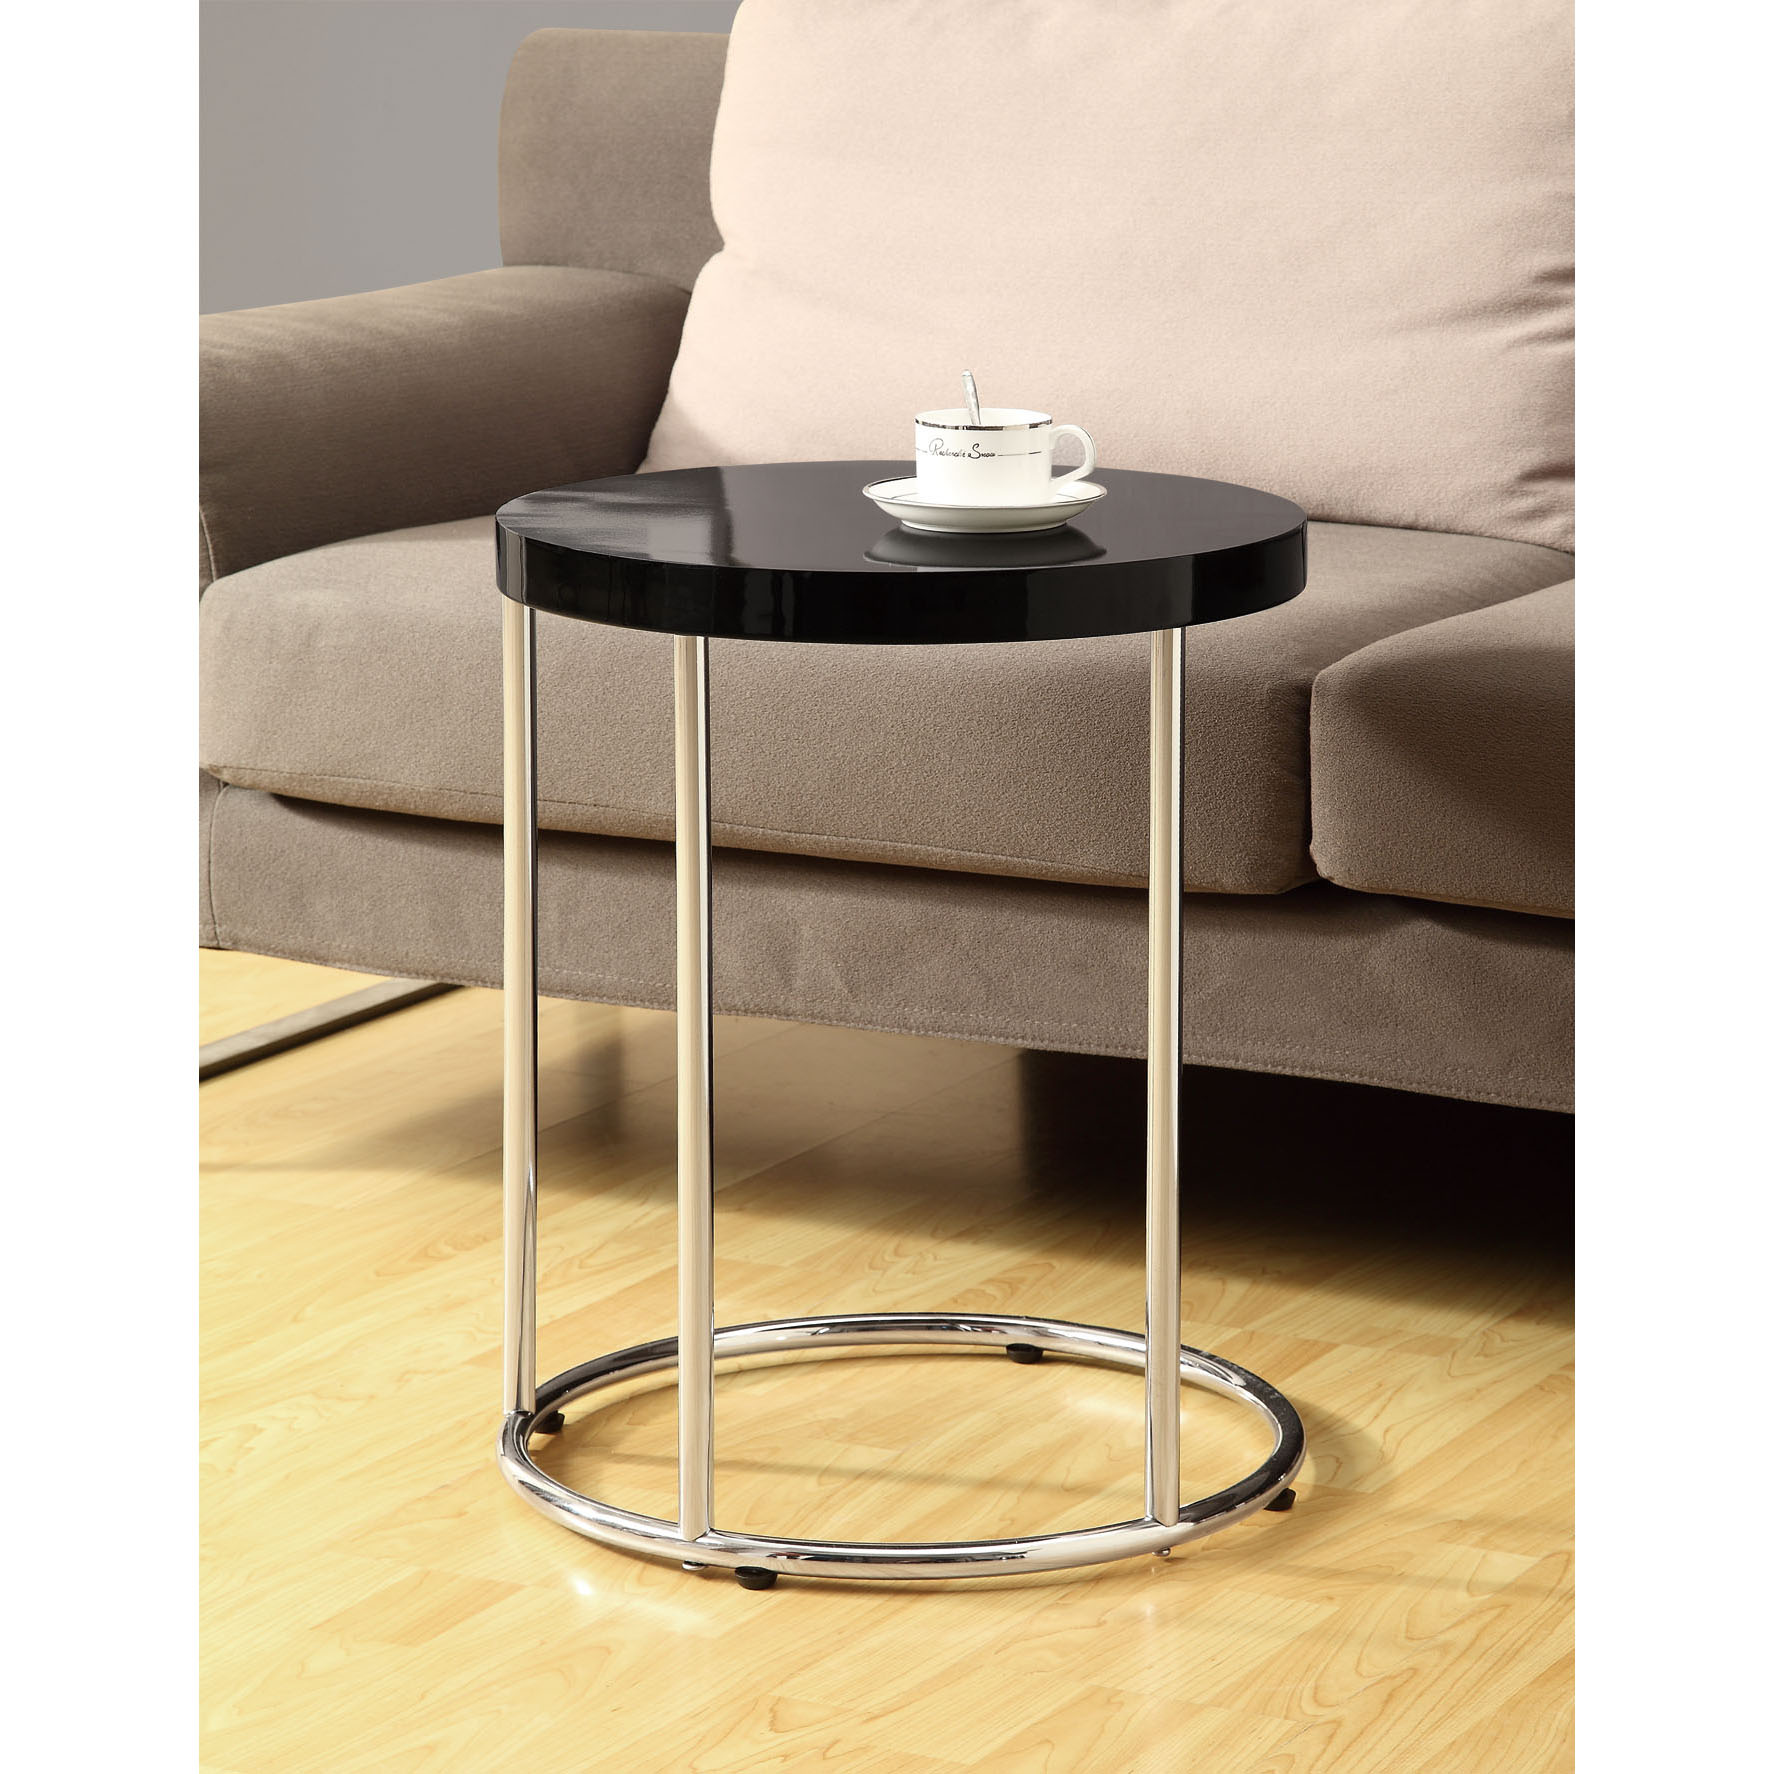 tall accent table tables decoration home maple side ikea inch sofa hampton bay fall river vintage crystal lamps folding couch round silver mini lamp cream white mats dark wood